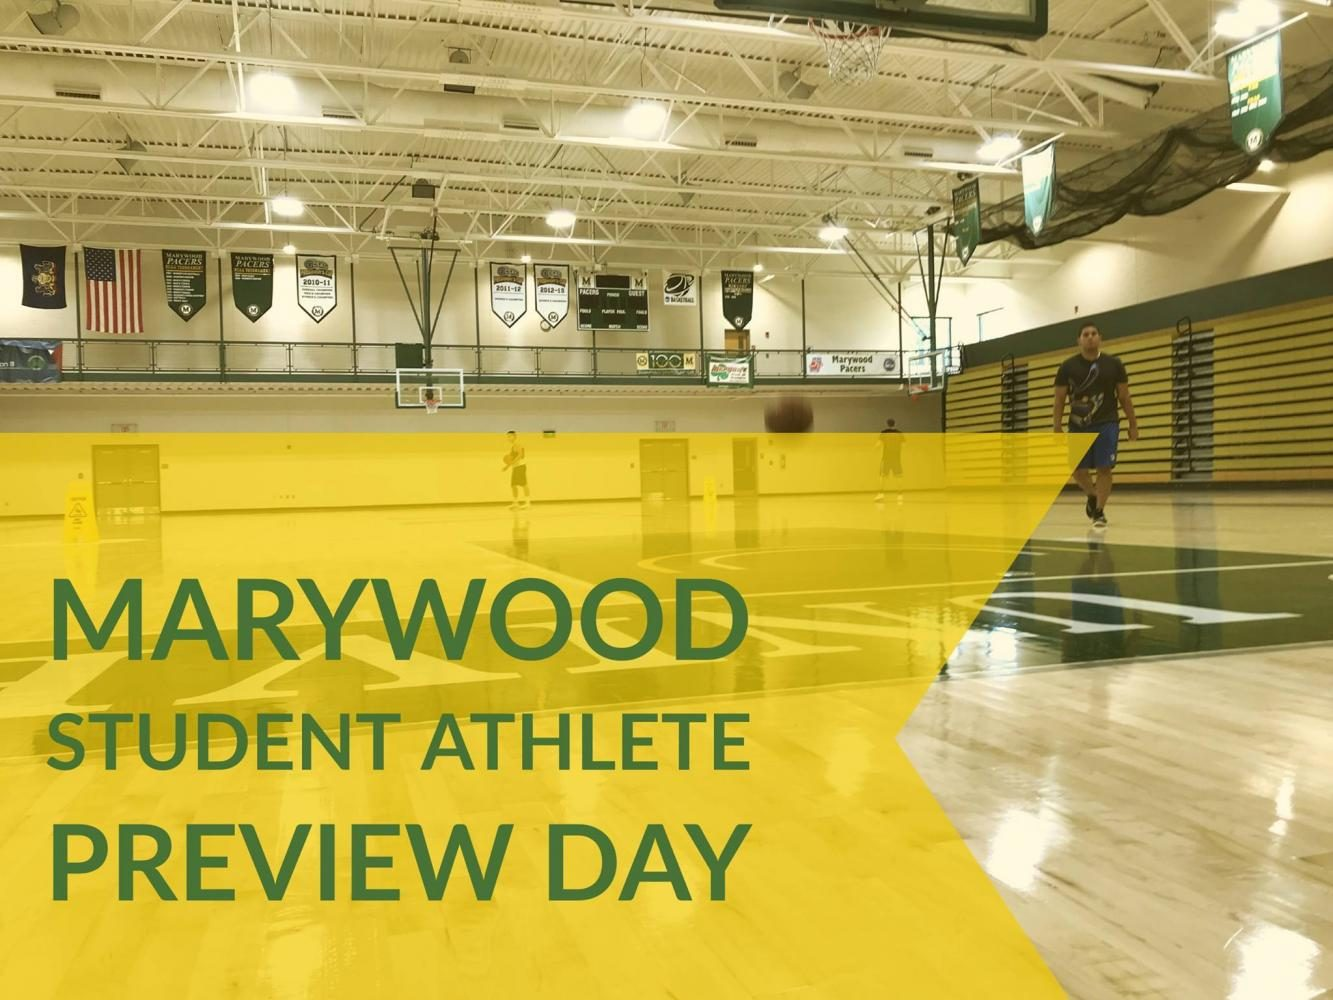 Student Athlete Preview Day to bring in prospective athletes